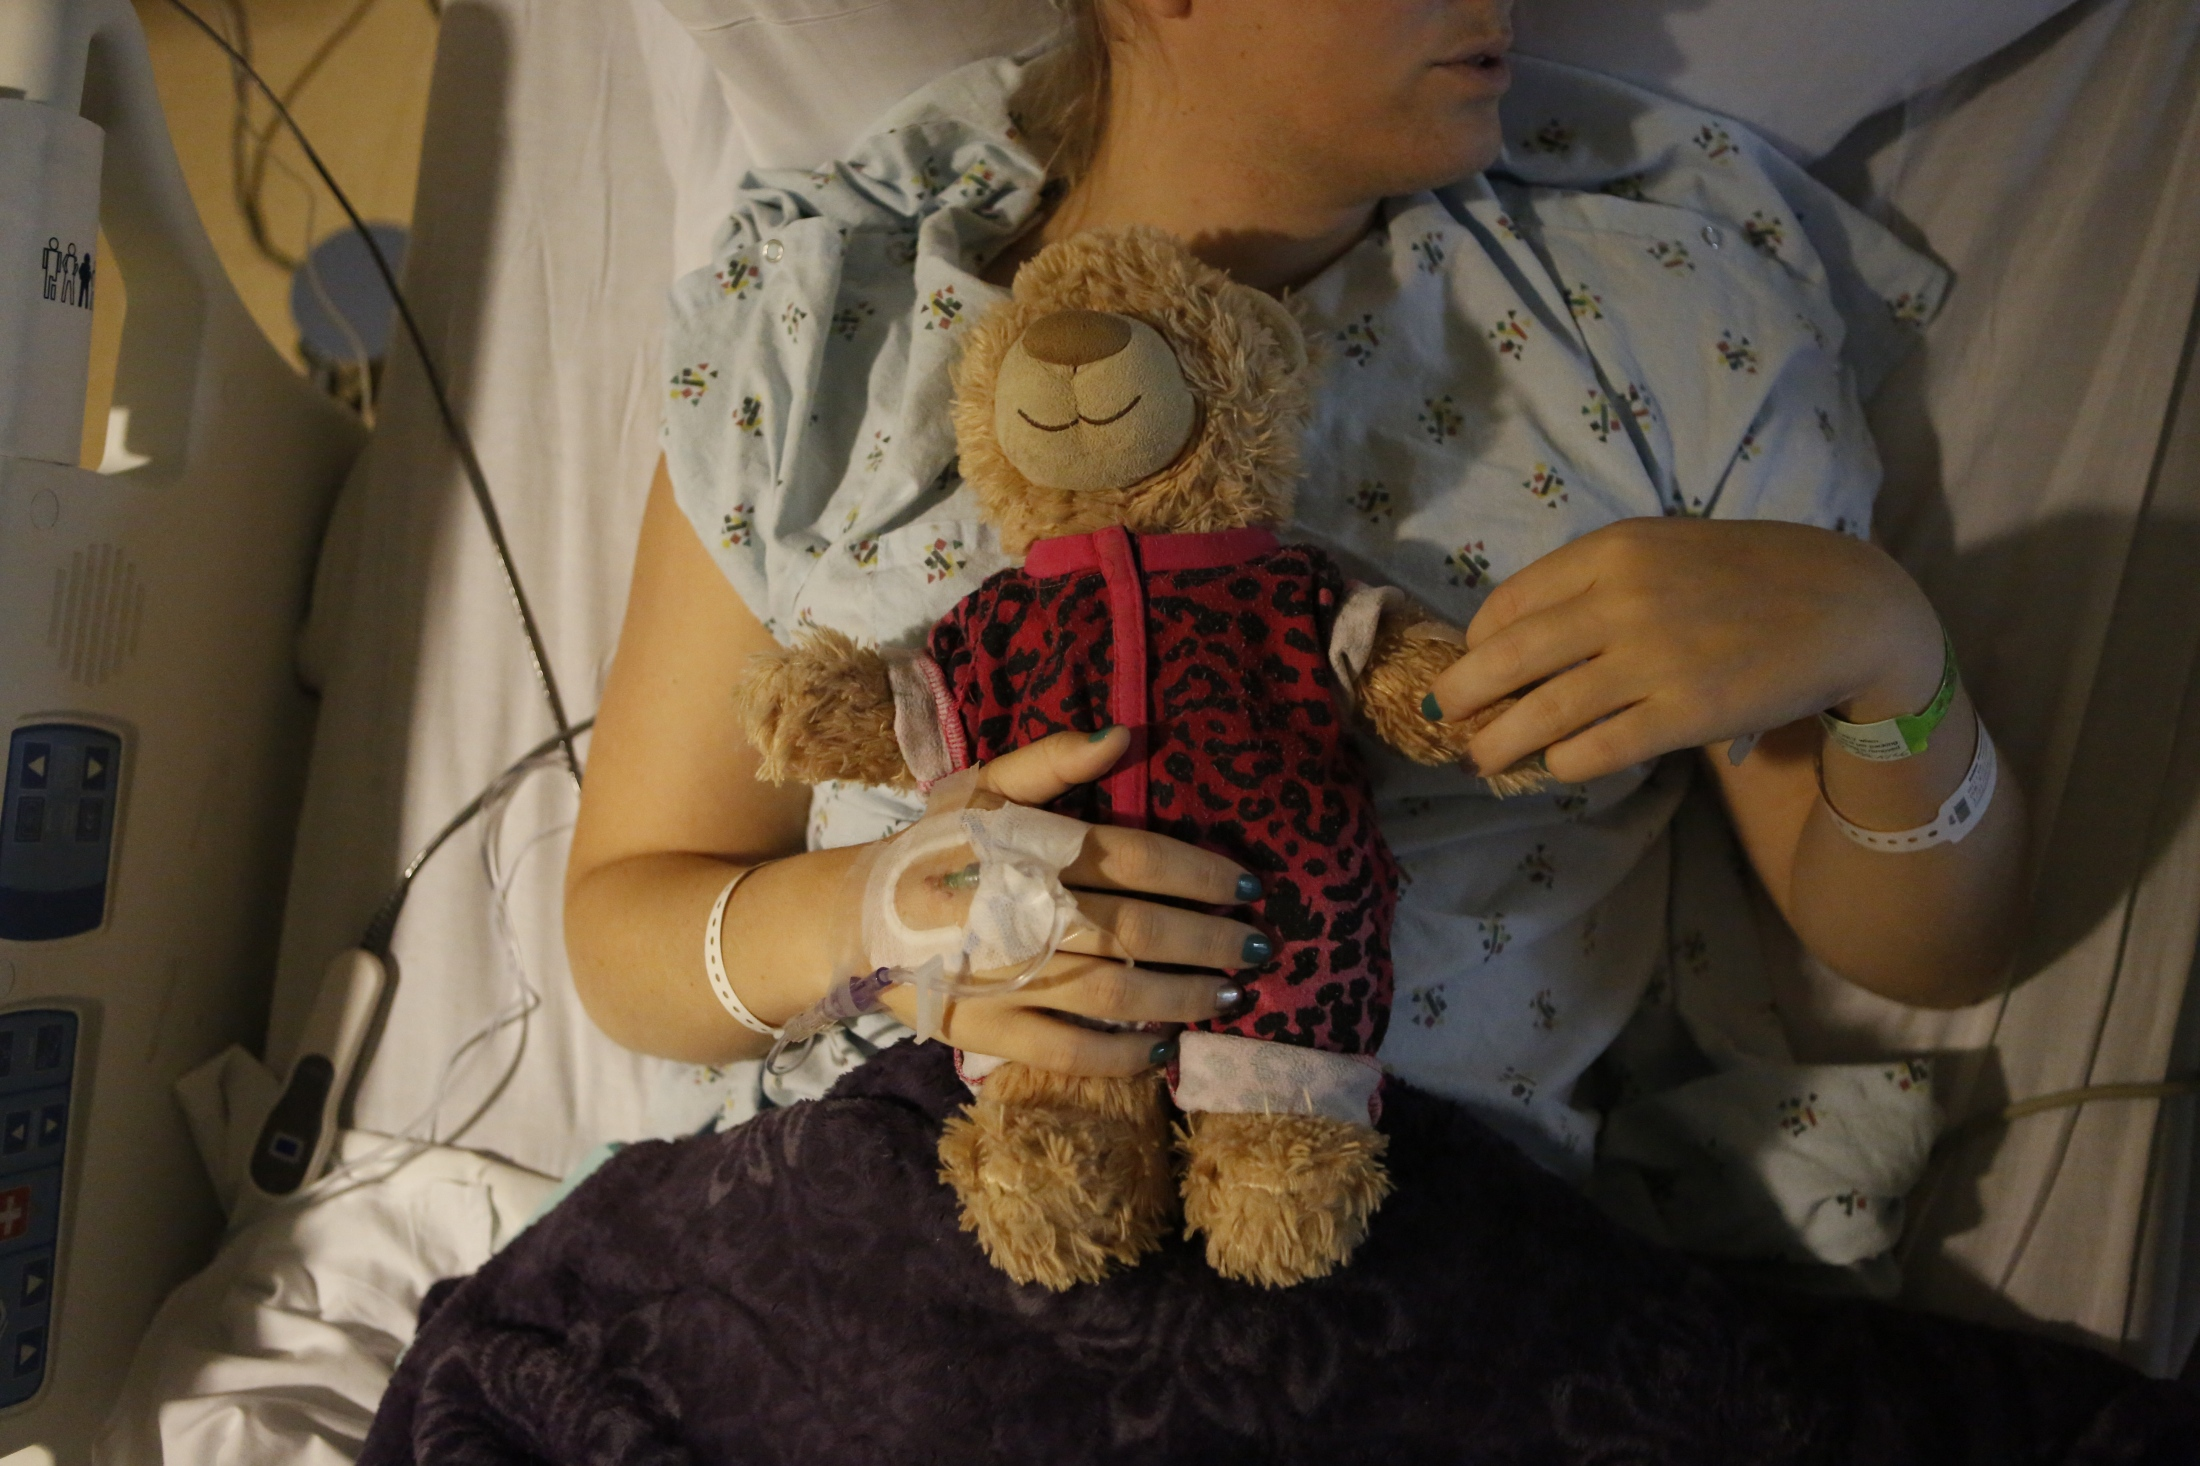 Taylor holds her teddy bear as she recovers from gender reassignment surgery in February 2018.